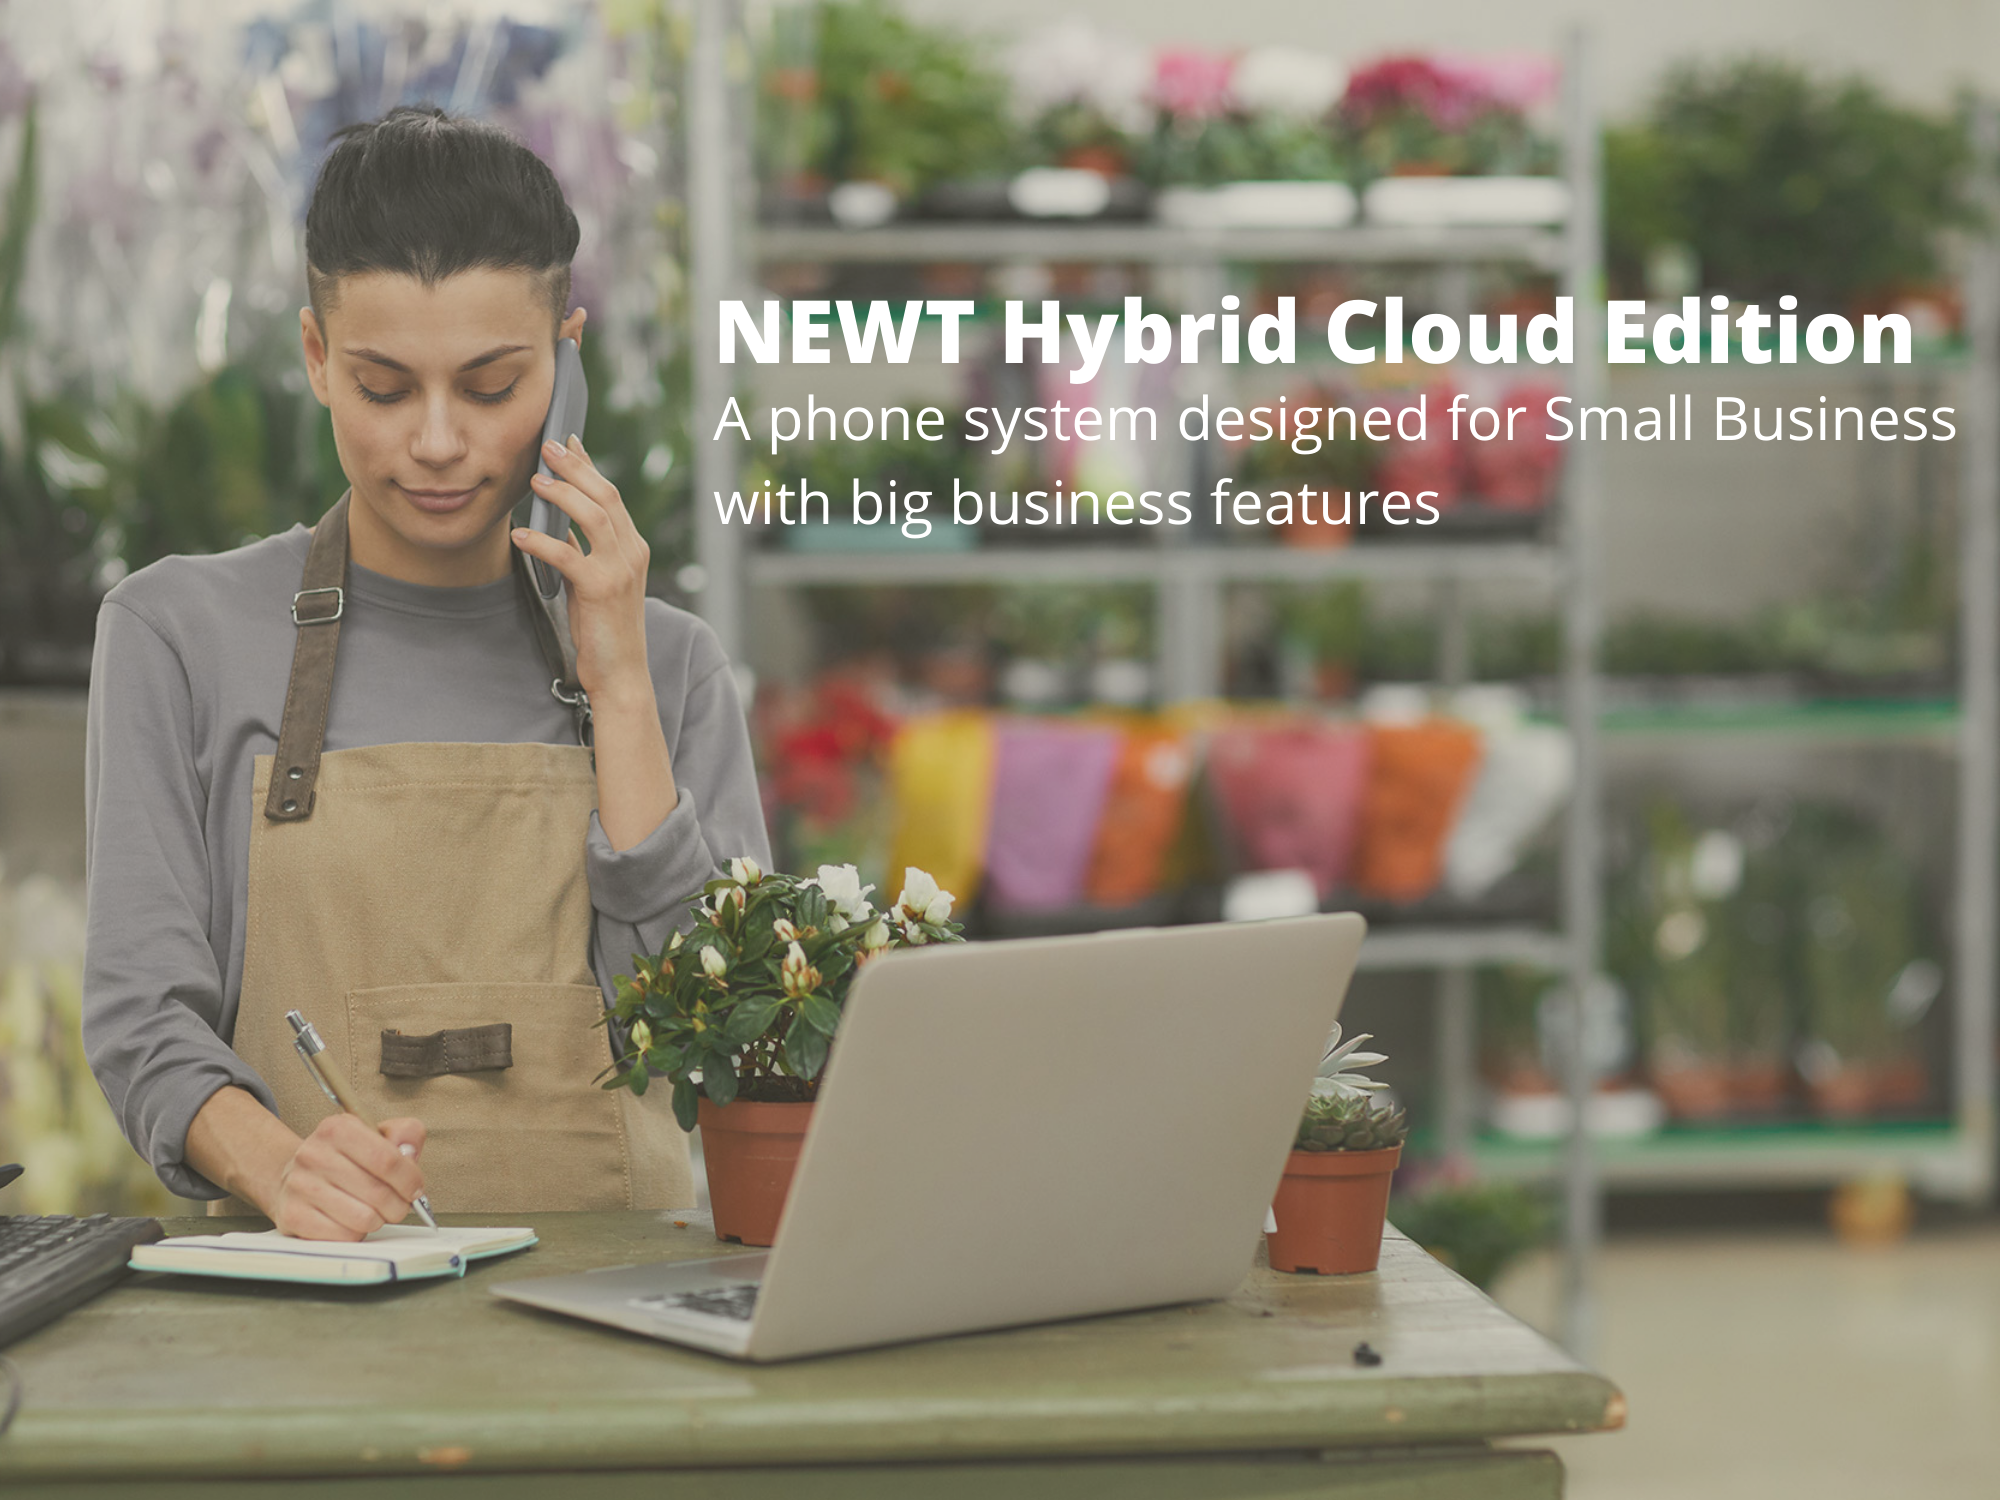 small business owner on phone with NEWT Hybrid Cloud Edition phone system